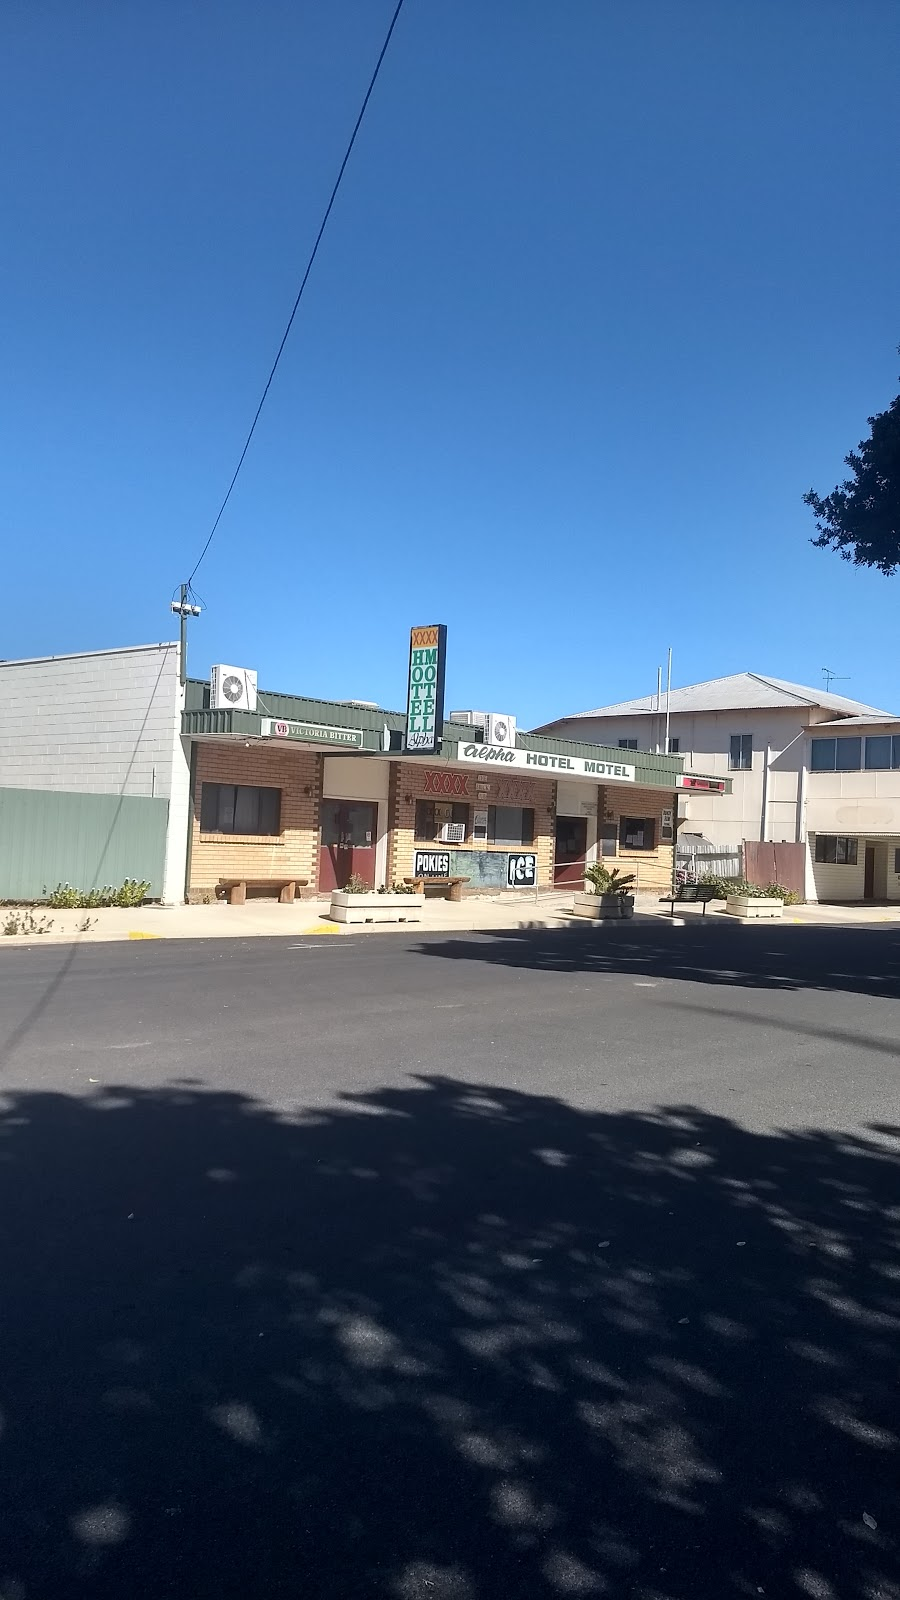 Alpha Hotel Motel | lodging | 33 Shakespeare St, Alpha QLD 4724, Australia | 0749851311 OR +61 7 4985 1311